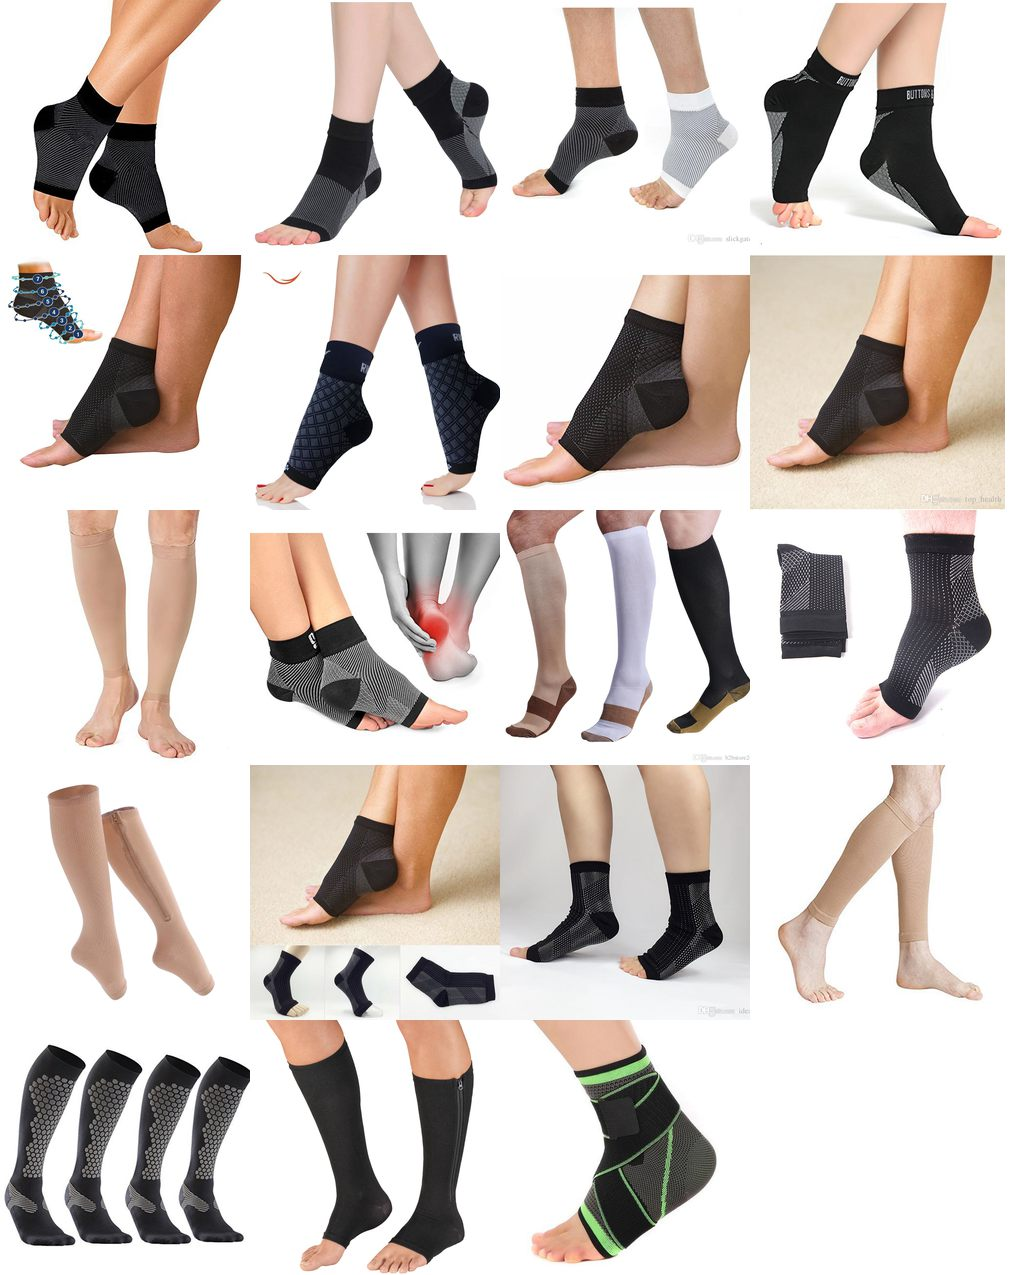 compression socks for ankle swelling